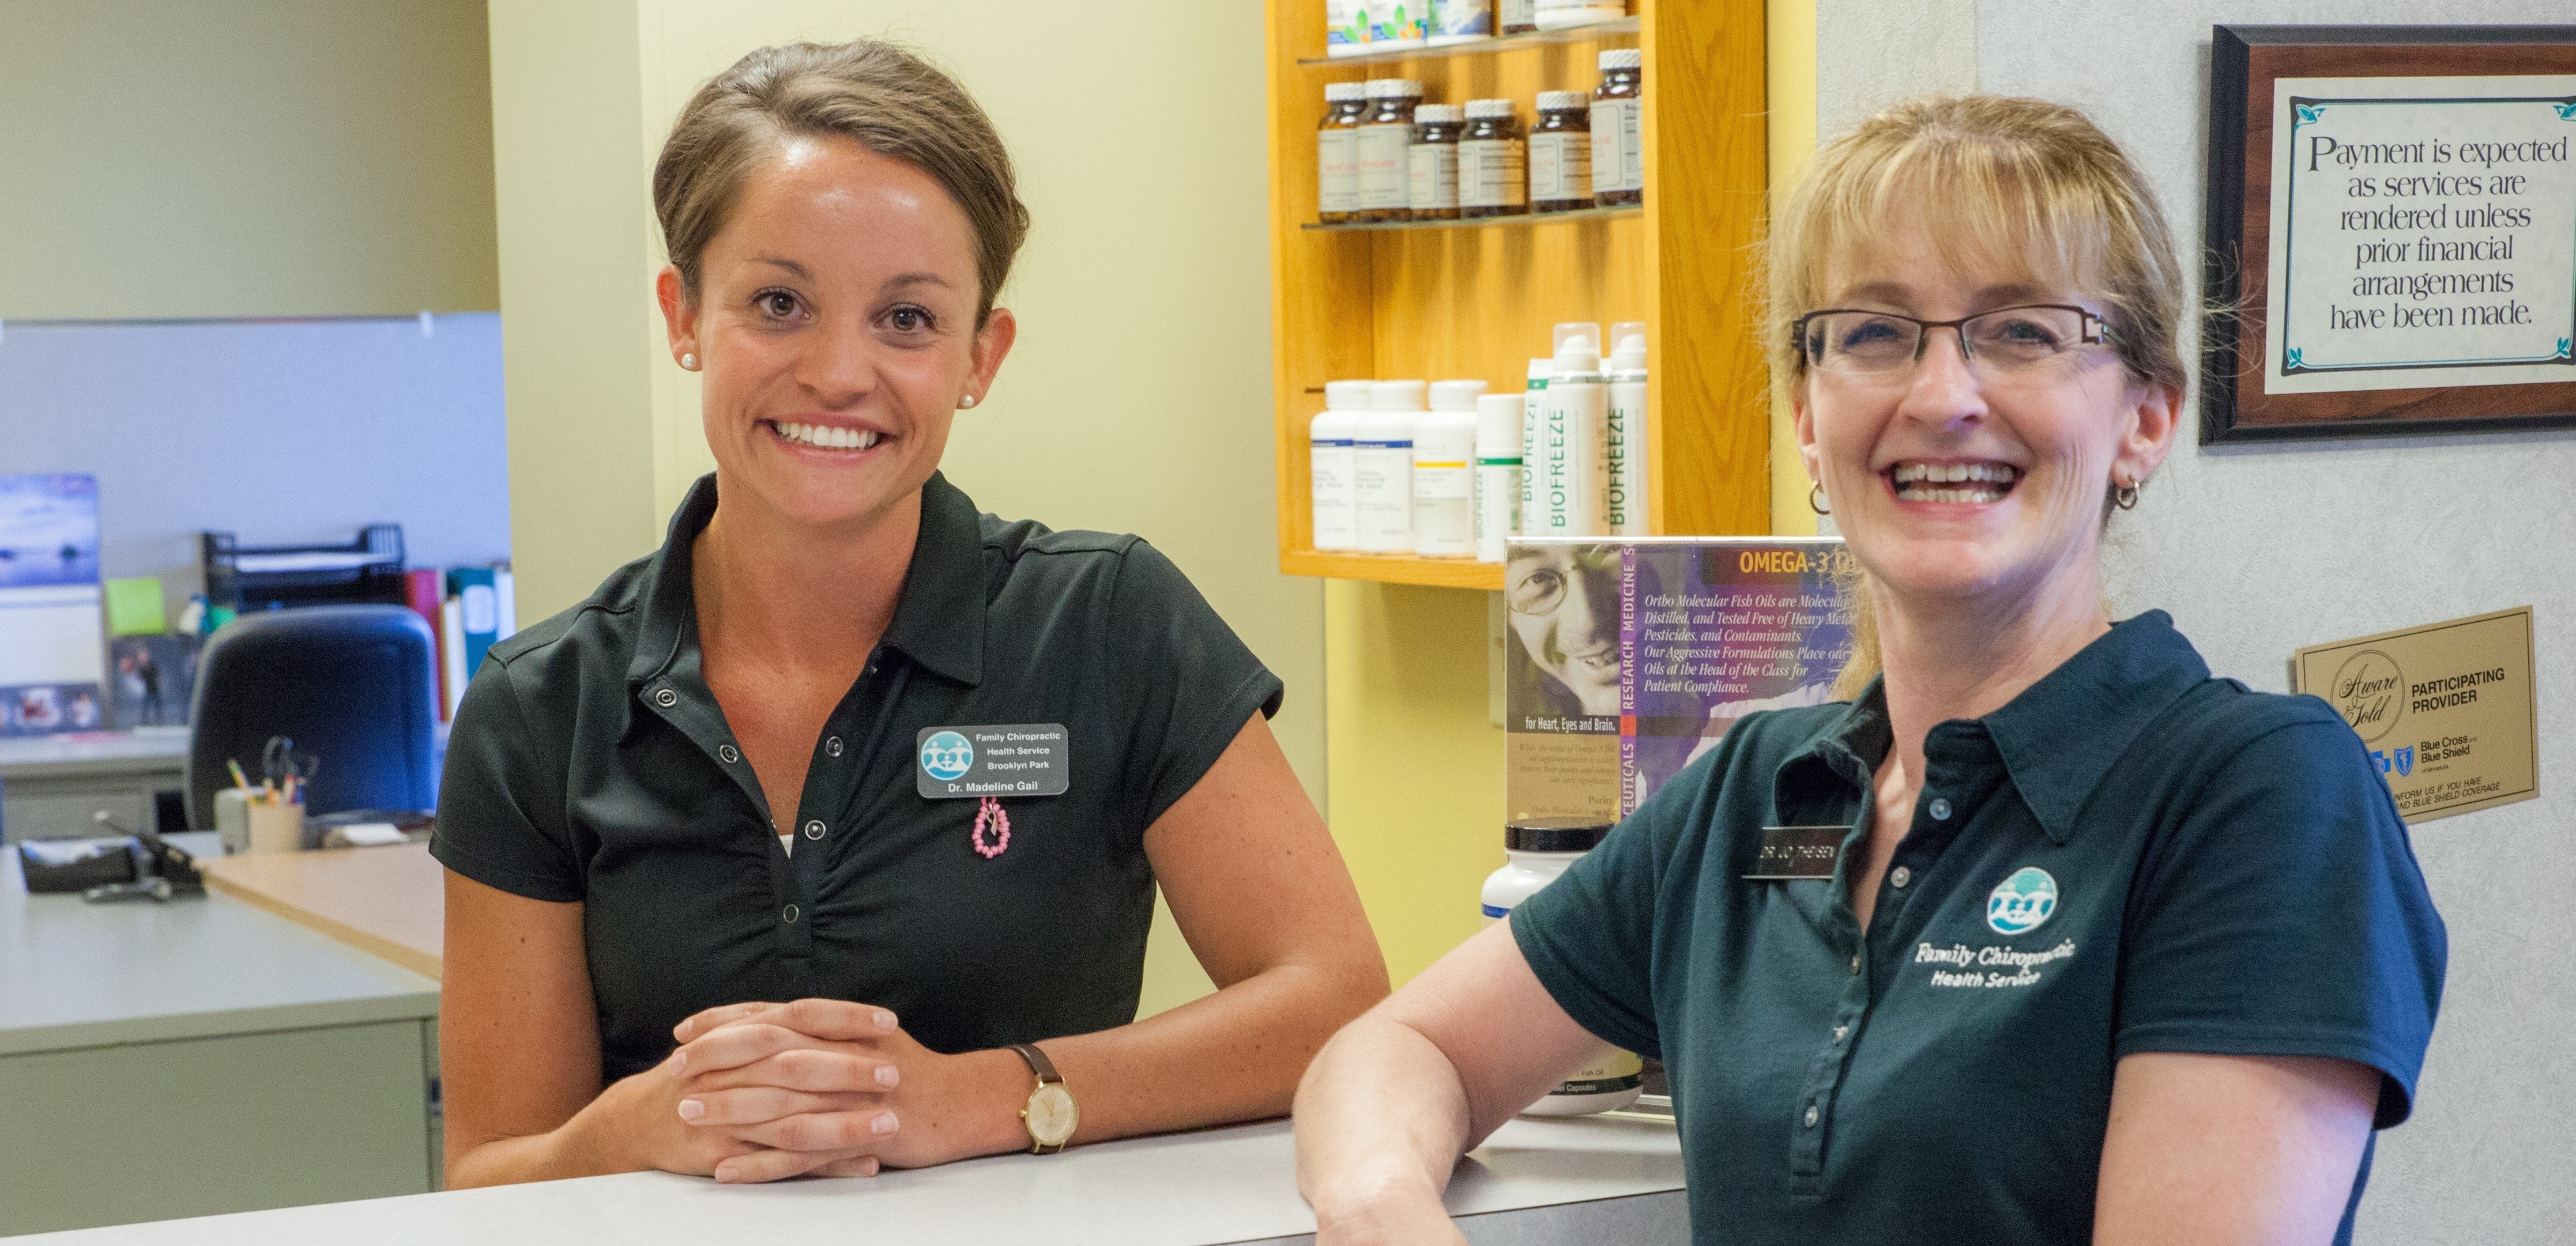 family chiropractic health service    home